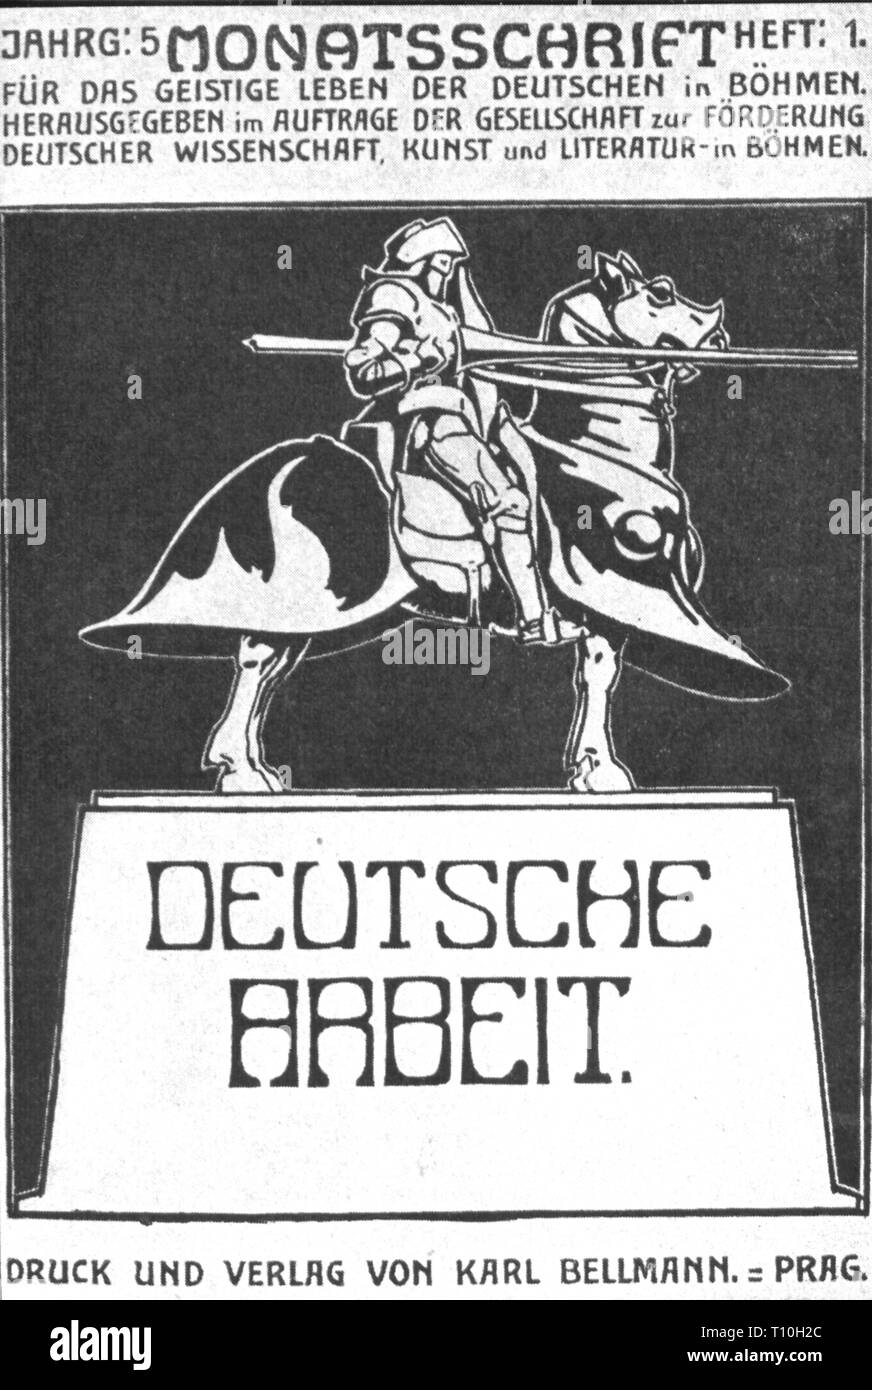 press / media, magazines, 'Deutsche Arbeit', title page, 5th volume, book 1, Prague, 1905, Austria-Hungary, Austria - Hungary, Bohemia, Germanness, German nationality, graphic, graphics, script, scripts, masthead, title, titles, typo, typeface, type, typefaces, fonts, types, font, culture, cultures, cultural journal, monument, monuments, knight, knights, knight's armour, knight's armor, lance, lances, horse, rider, riders, riding, pedestal, pedestals, armour suit, armor suit, 20th century, 1900s, press, presses, volume, volumes, book, books, Prag, Additional-Rights-Clearance-Info-Not-Available - Stock Image